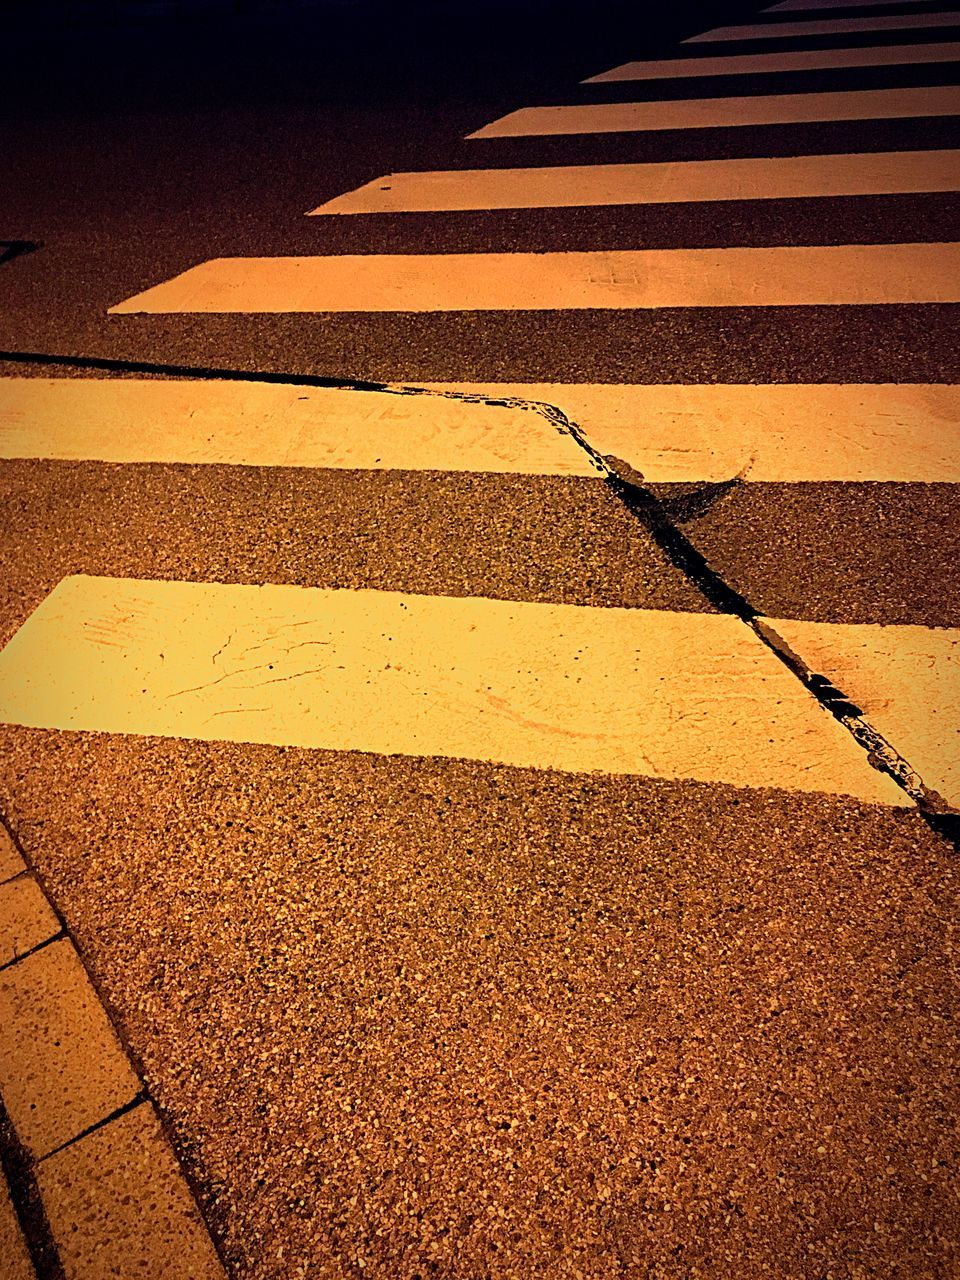 road marking, street, striped, asphalt, road, outdoors, transportation, day, yellow, full frame, no people, city